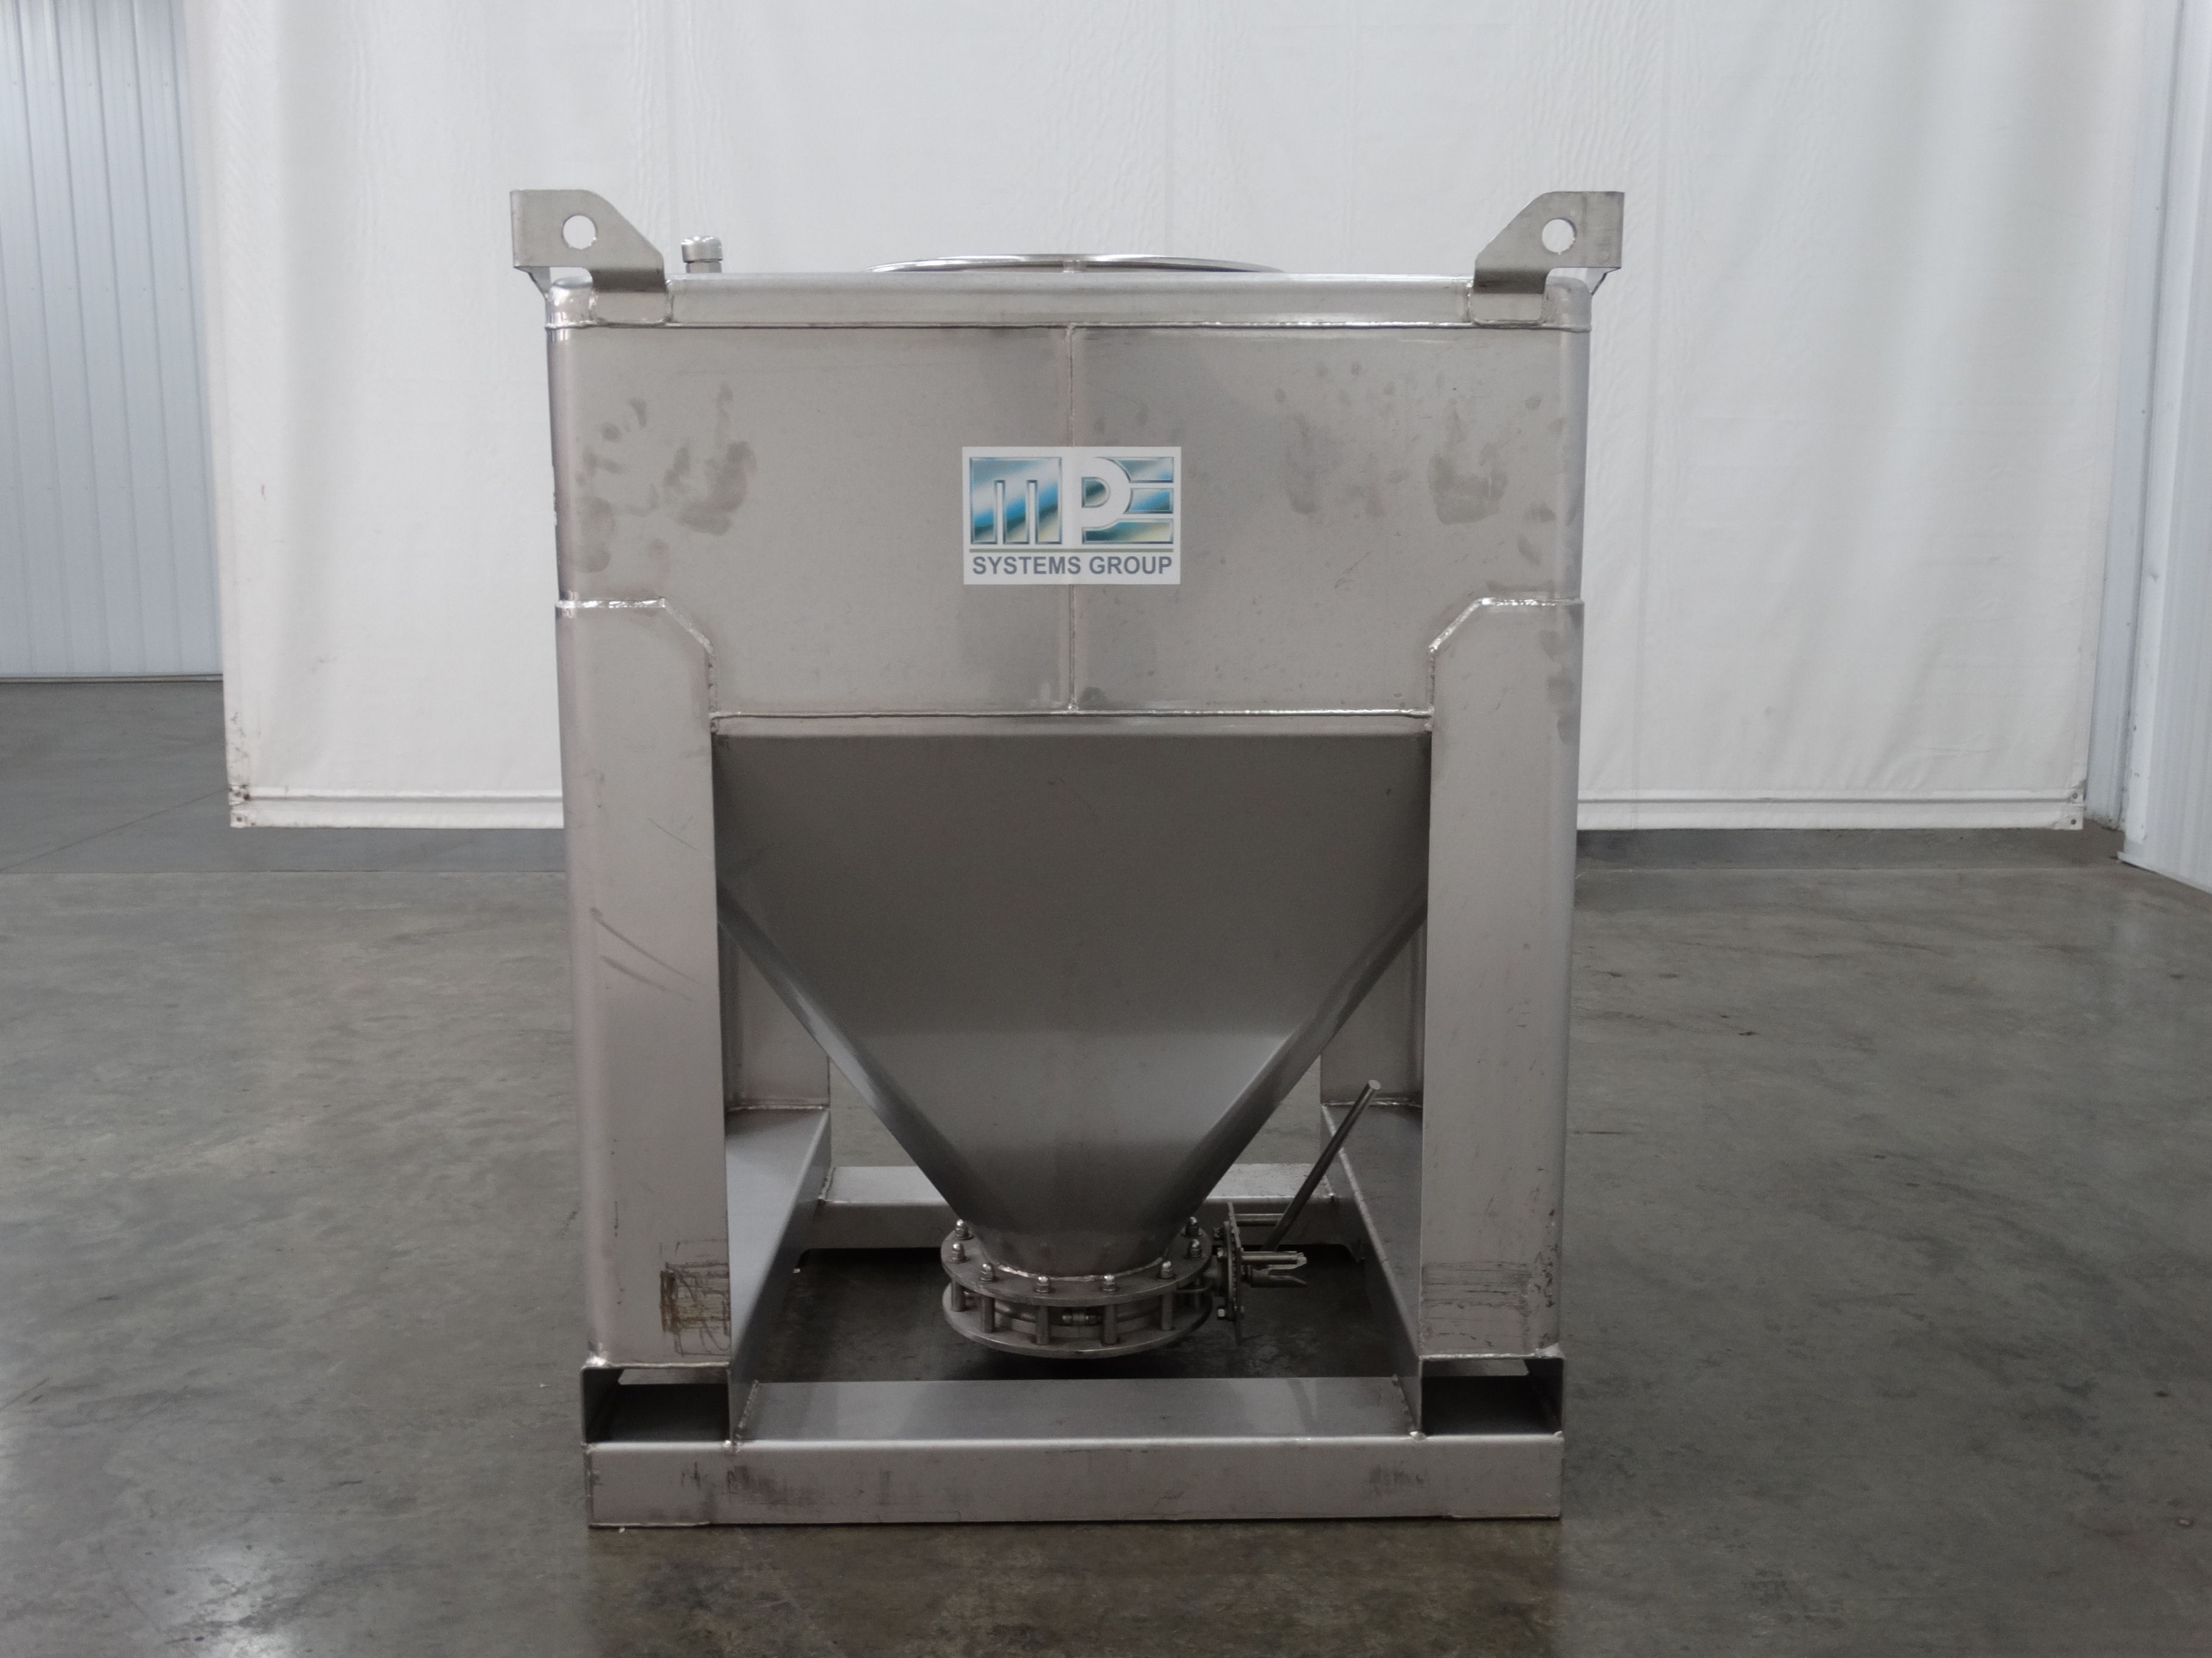 MPE Systems 220 Gallon Stainless Steel Tote D1520 - Image 2 of 8